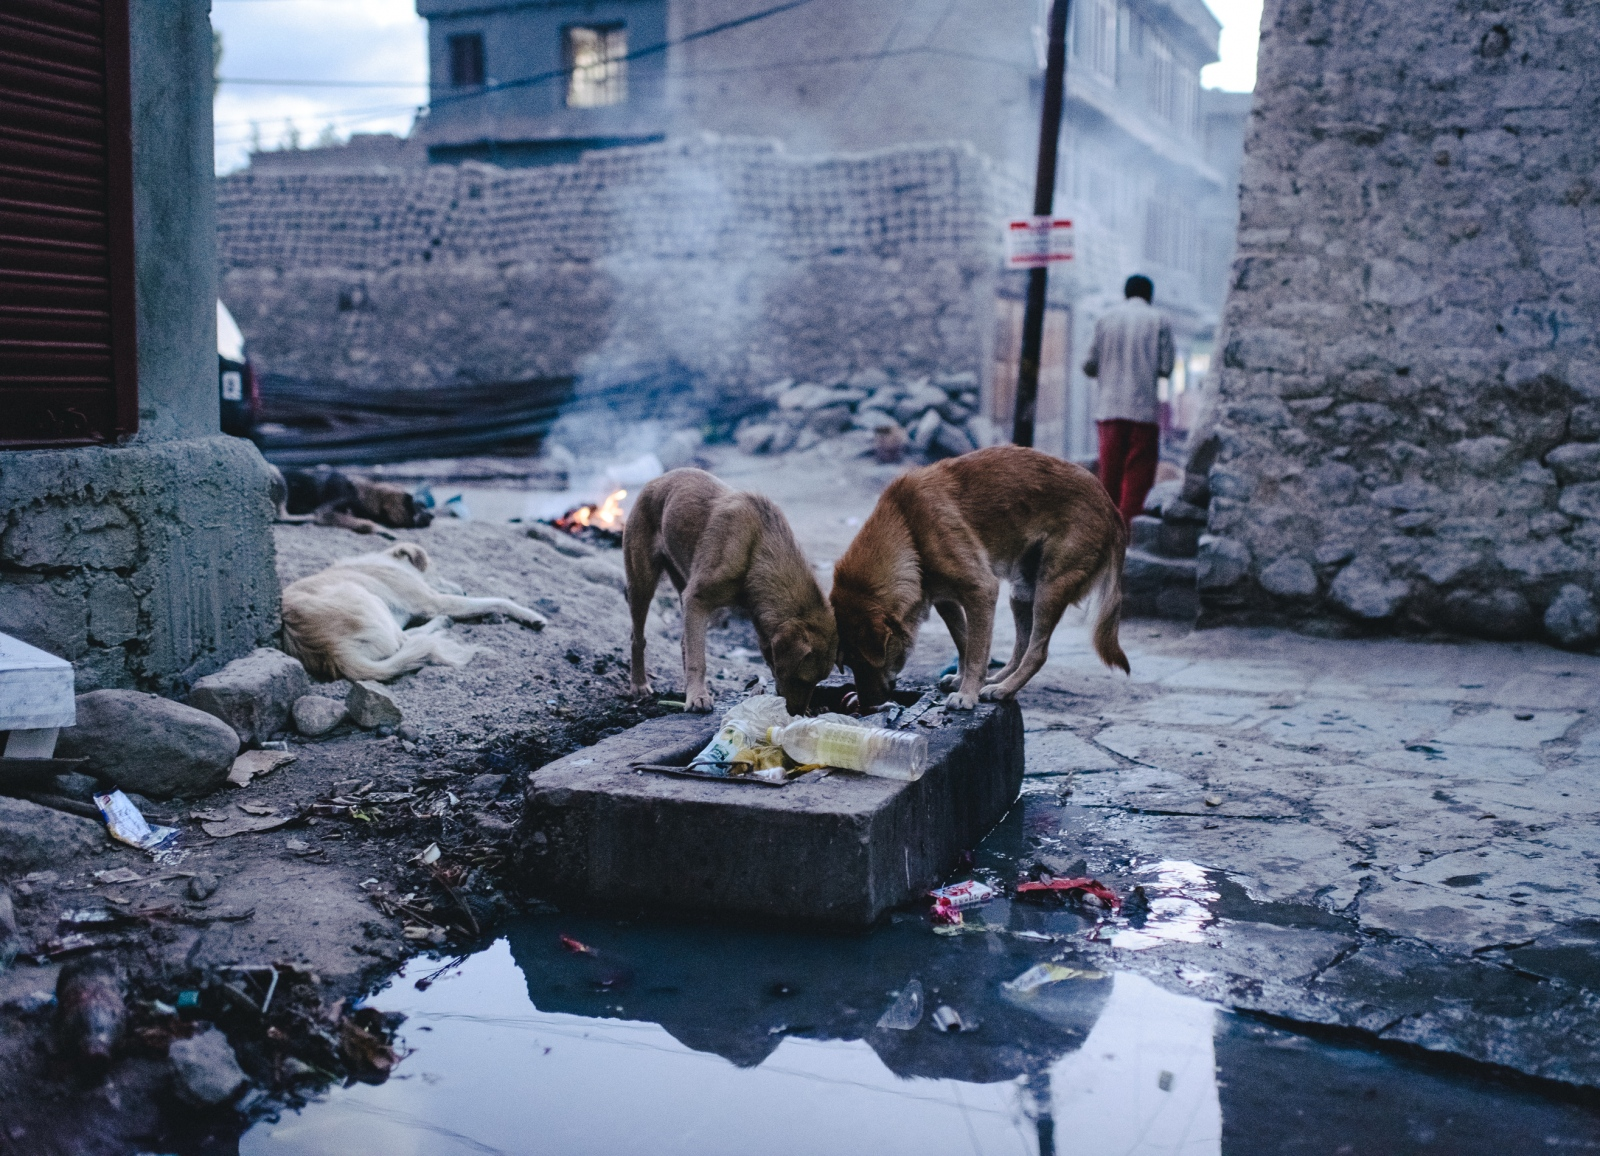 Stray dogs sift through trash heeps looking for food behind the central mosque, Jamia Masjid in Leh, Ladakh. Like many cities, the strays risk the prospect of severe health defects due to contaminated water and poor sanitation.